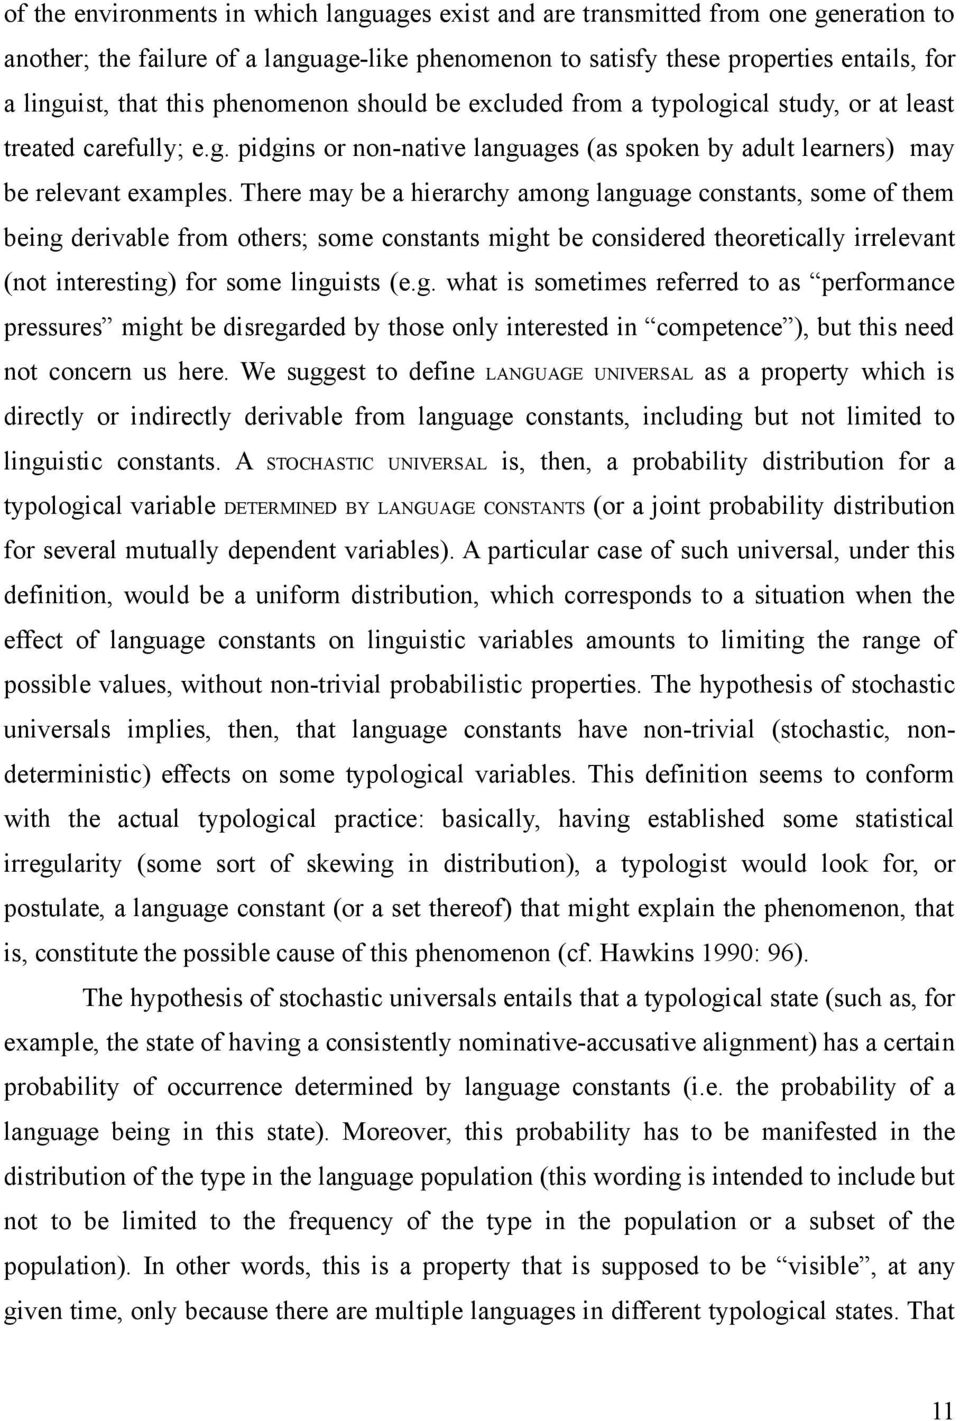 There may be a hierarchy among language constants, some of them being derivable from others; some constants might be considered theoretically irrelevant (not interesting) for some linguists (e.g. what is sometimes referred to as performance pressures might be disregarded by those only interested in competence ), but this need not concern us here.